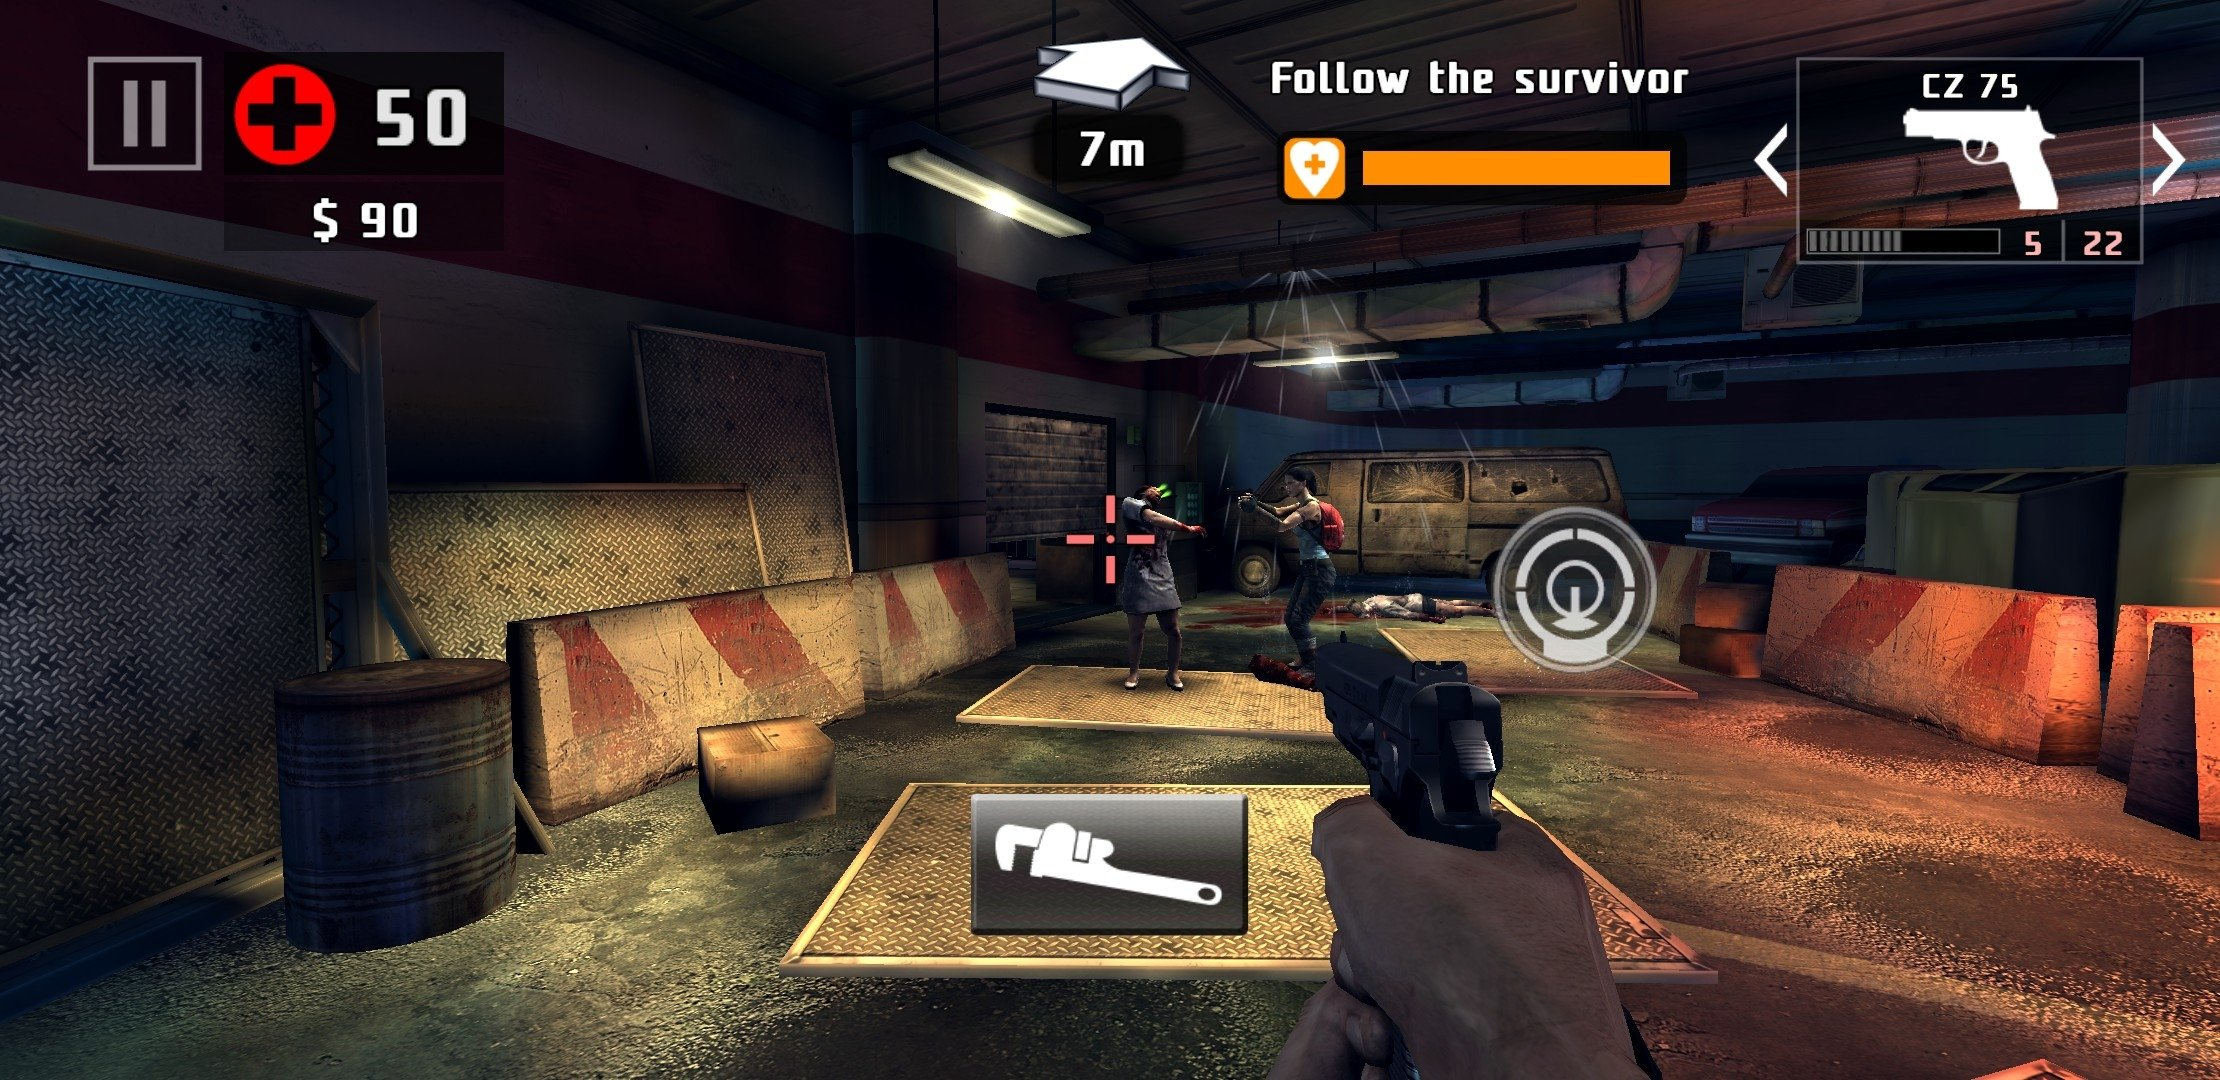 Free Fall Wallpaper For Iphone 6 Dead Trigger 2 1 3 3 Download For Android Apk Free